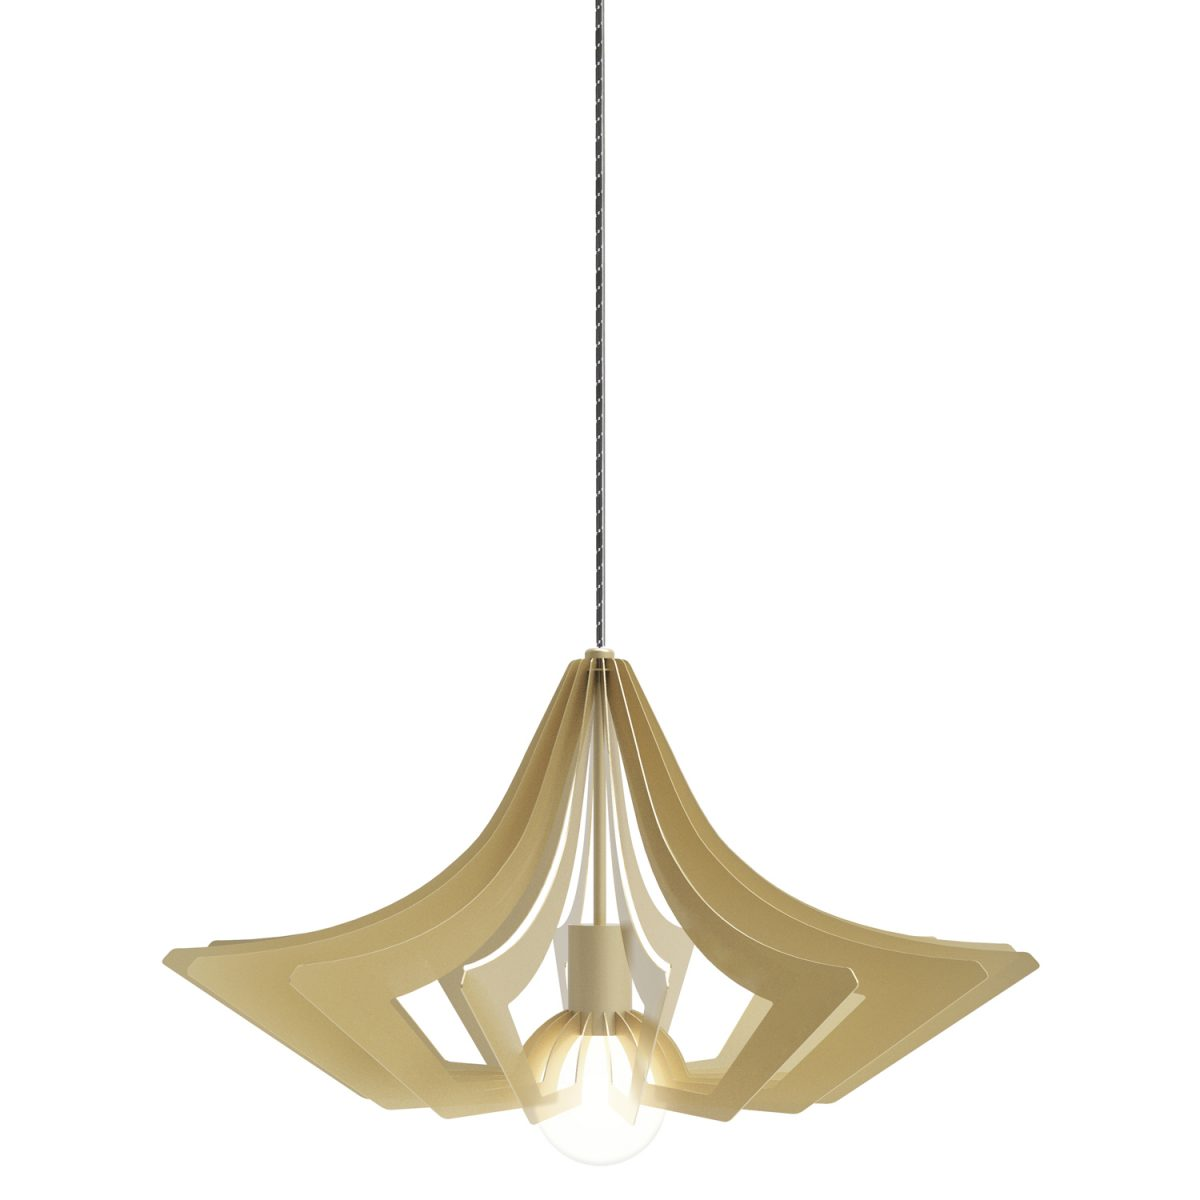 JSPR Beaudine II Champ Opaque Dutch Design Hanglamp